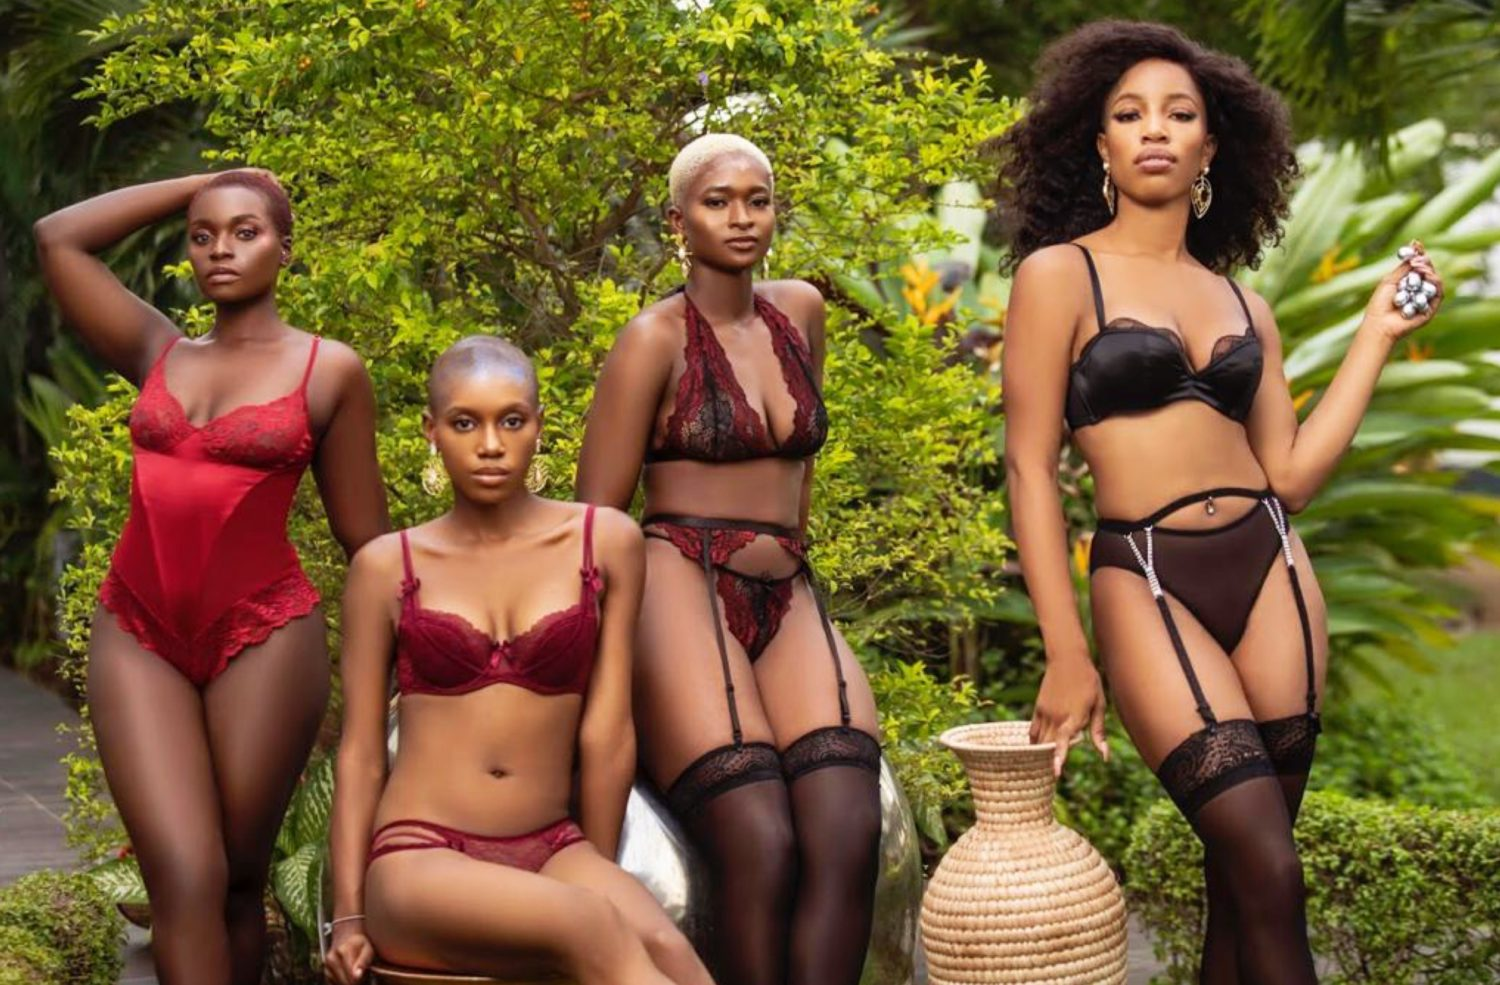 And Now, The New Affordable Lingerie Brand BellaStylistas Are Loving – I.M.A